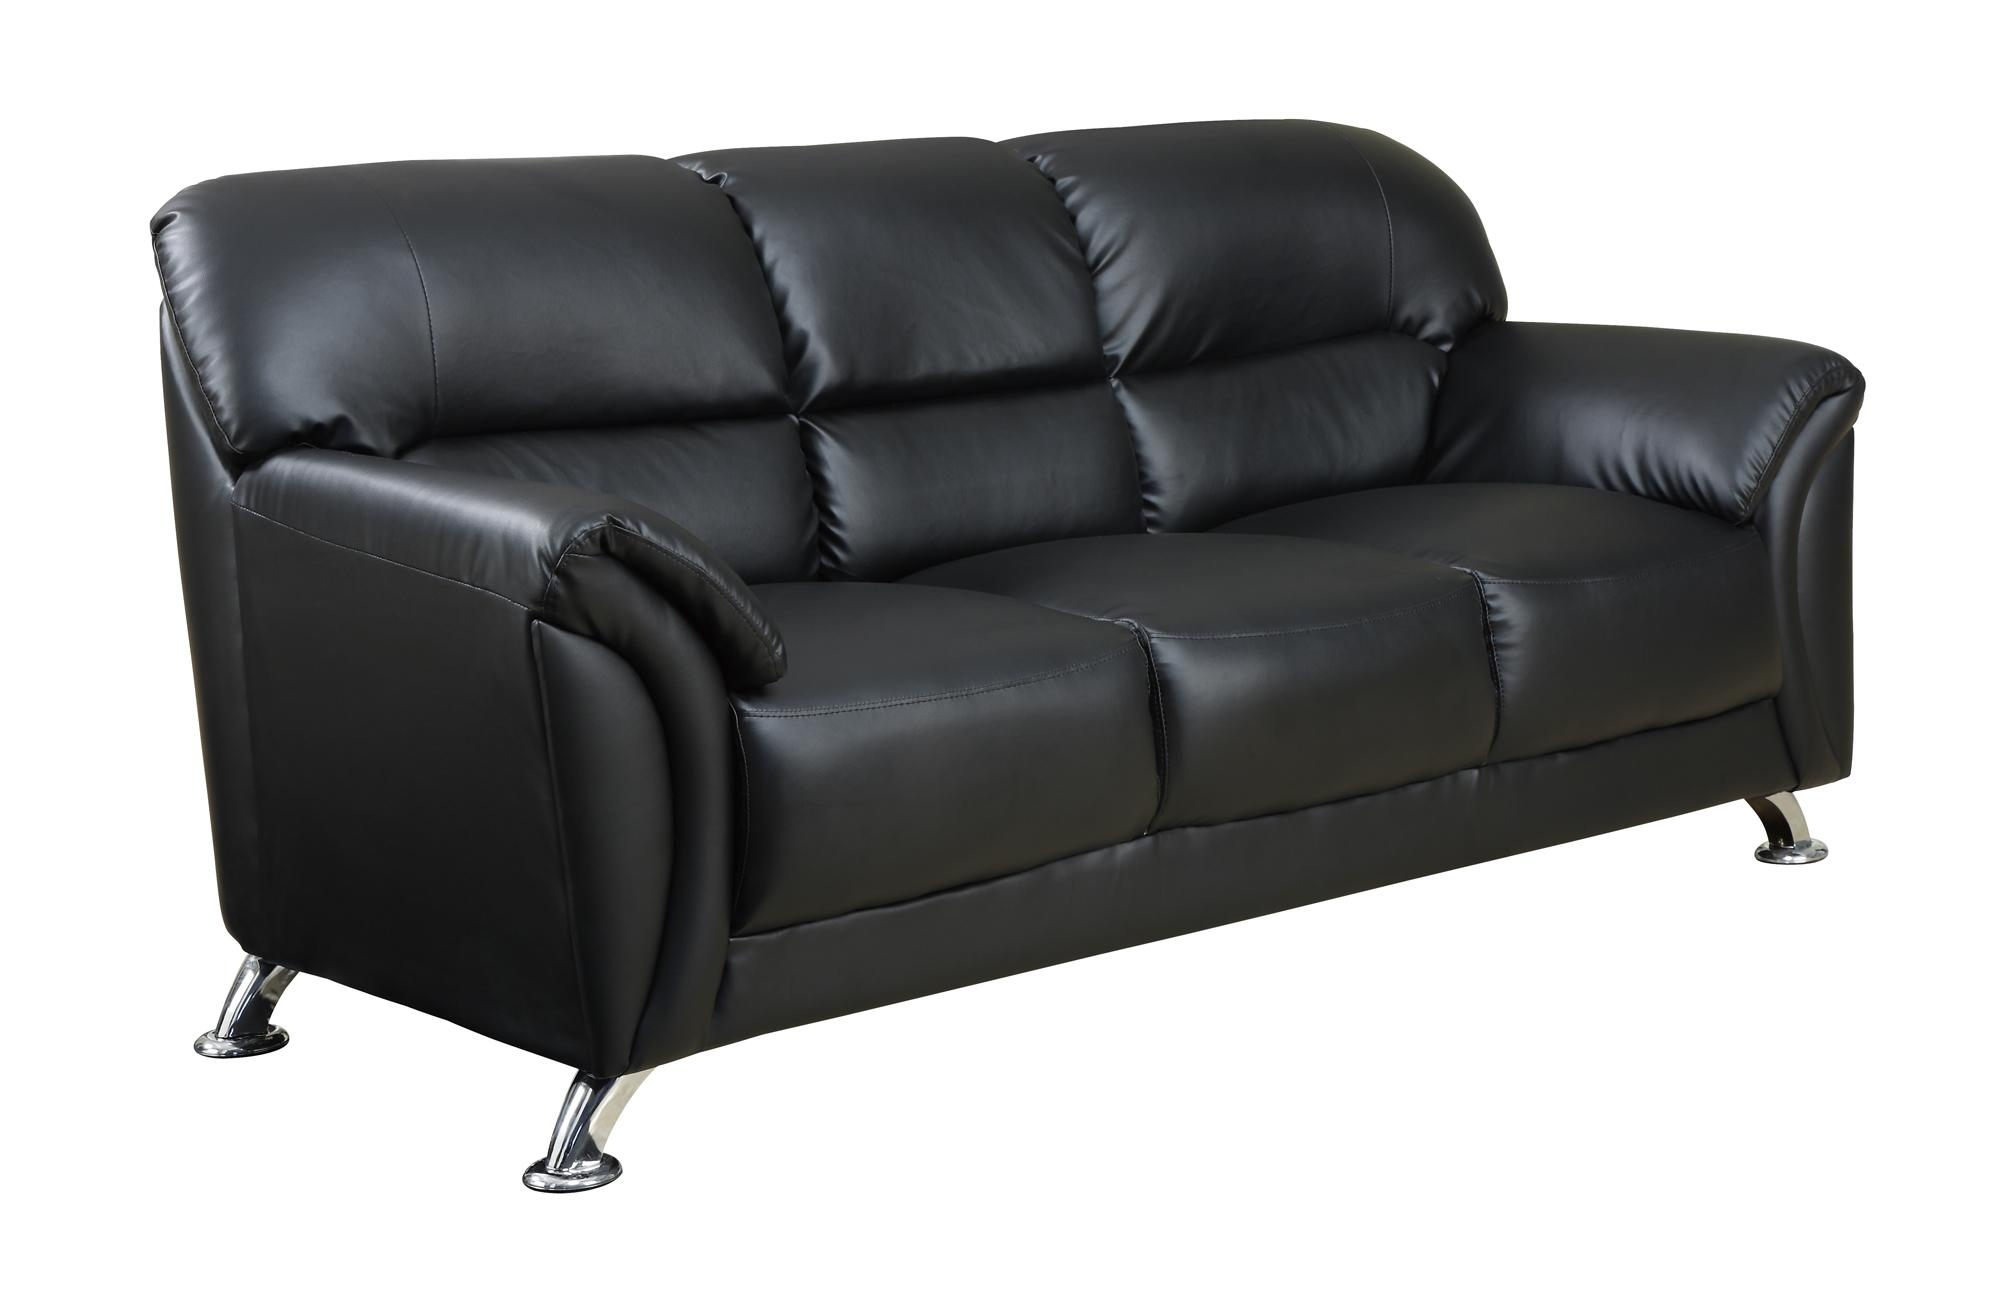 U9103 Black Vinyl Sofaglobal Furniture throughout Black Vinyl Sofas